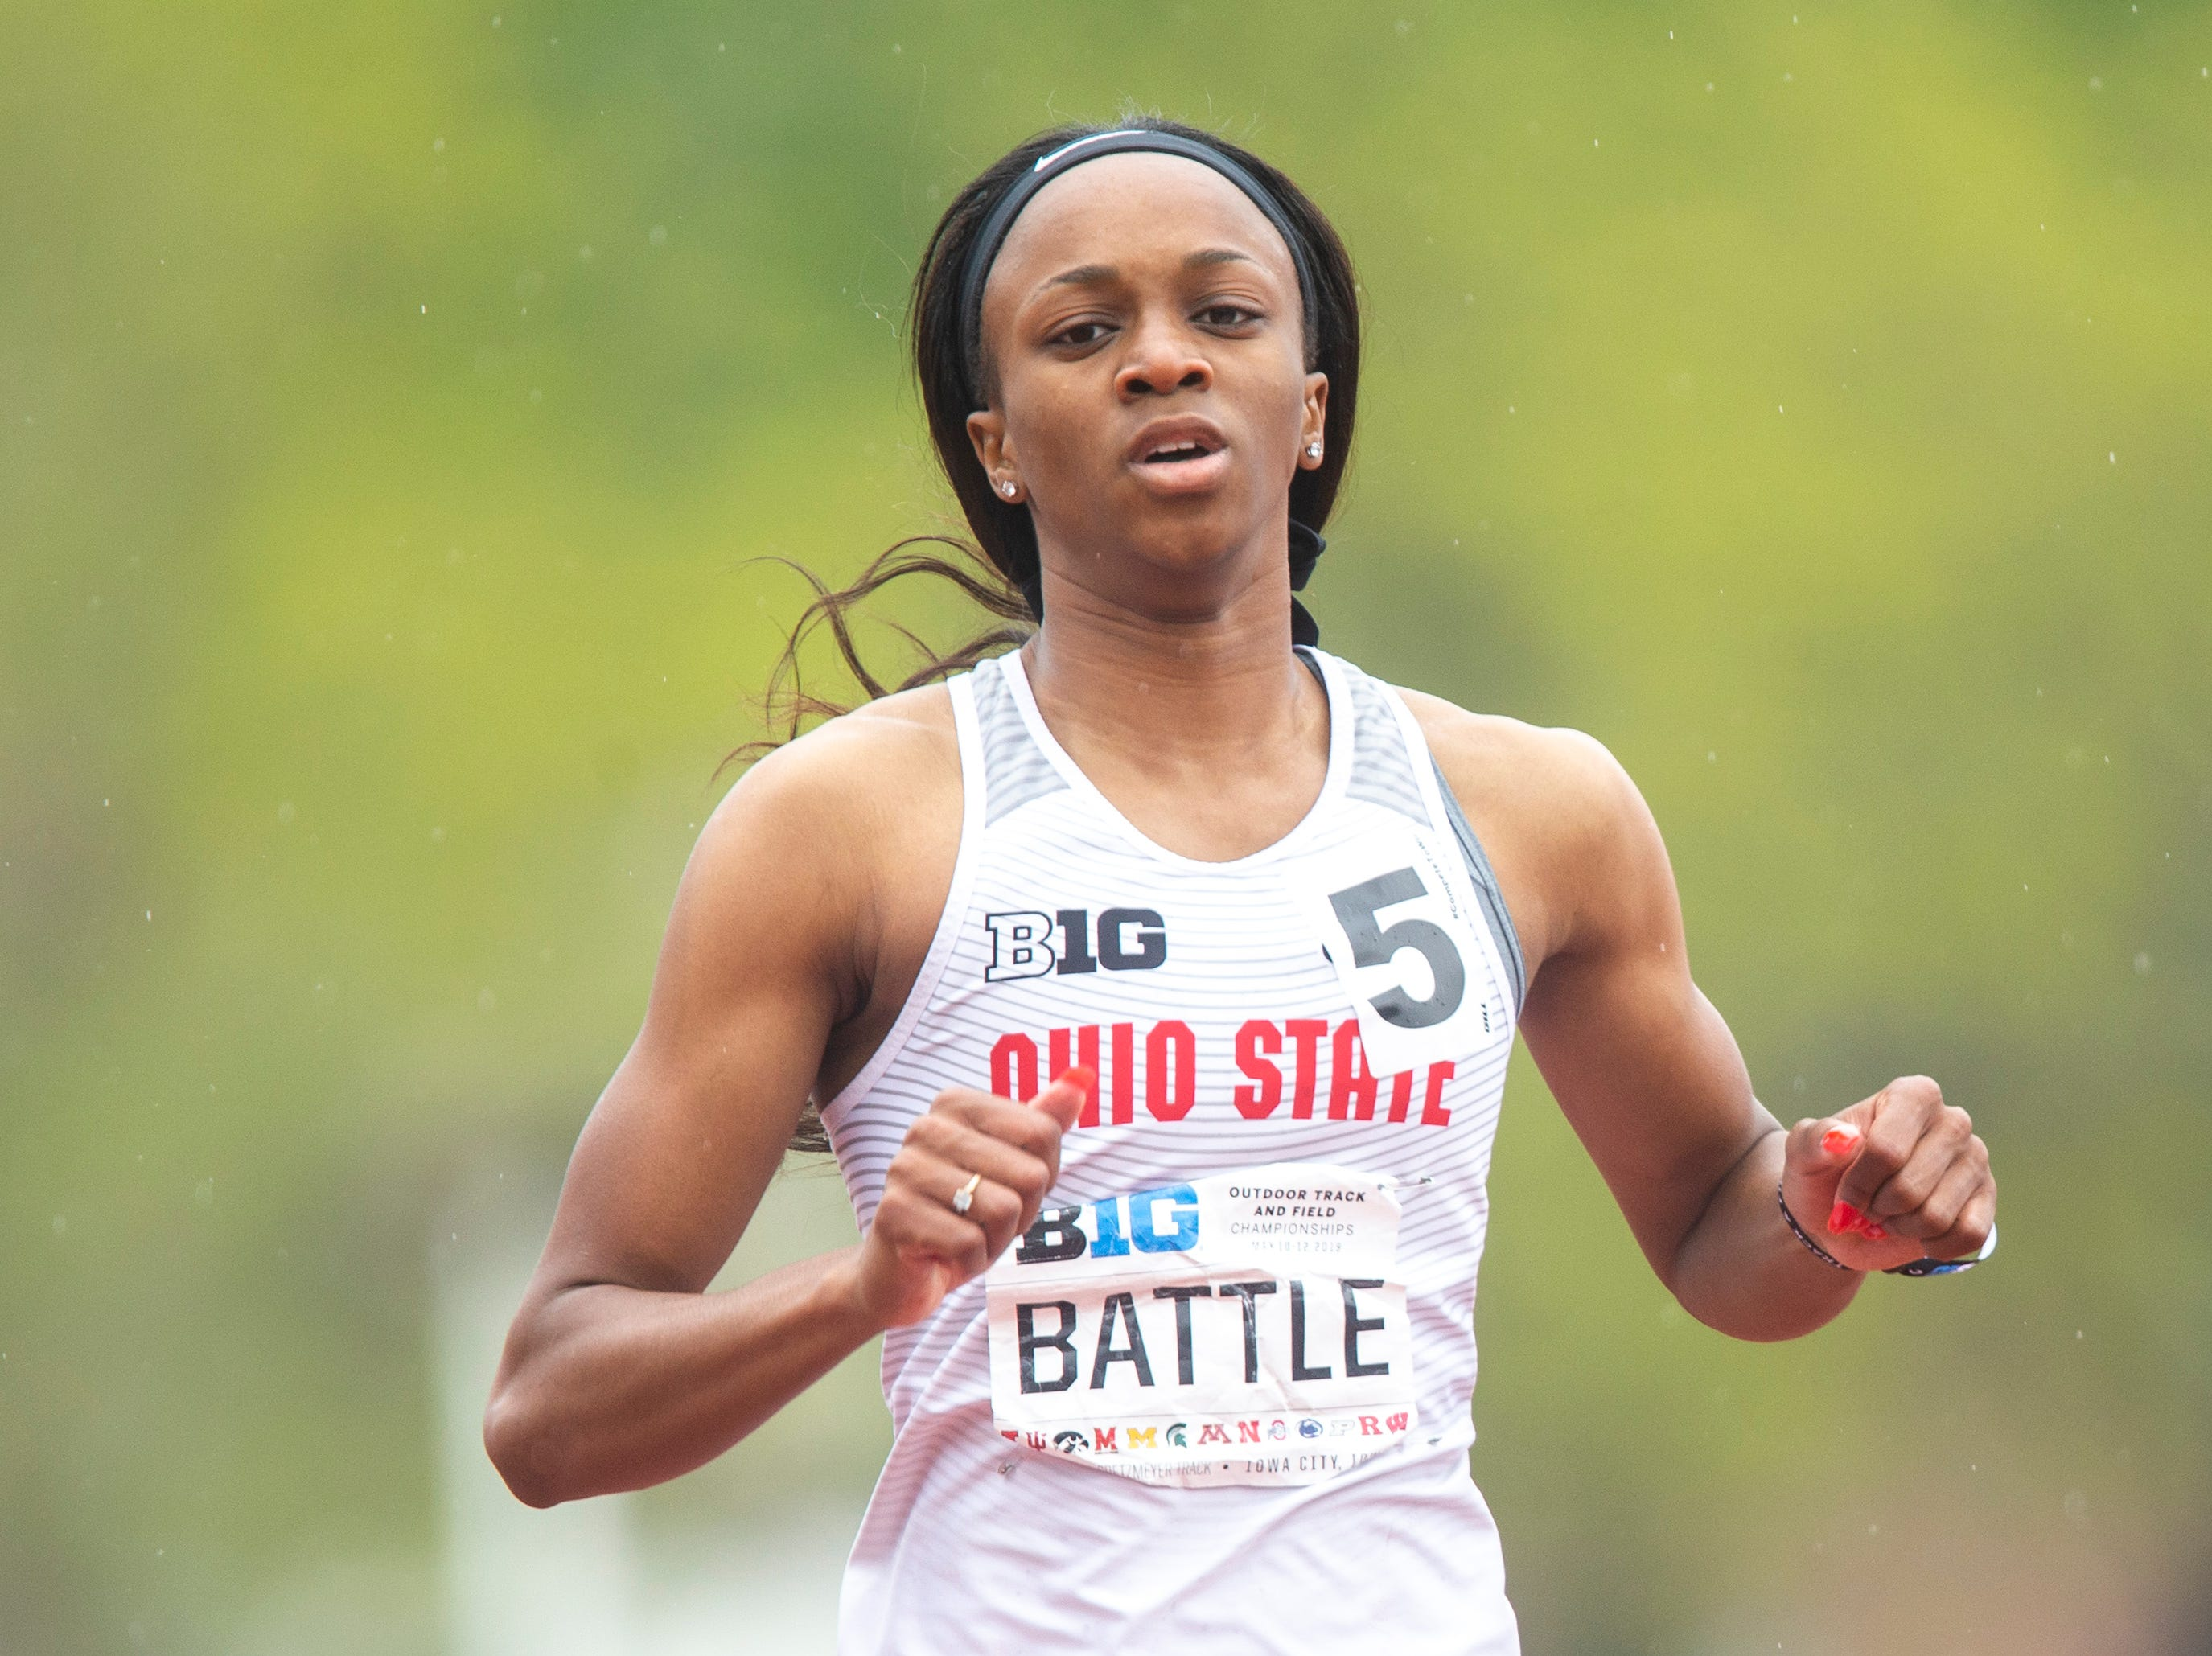 Ohio State sophomore Anavia Battle crosses the finish line in the 200 meter dash during the final day of Big Ten track and field outdoor championships, Sunday, May 12, 2019, at Francis X. Cretzmeyer Track on the University of Iowa campus in Iowa City, Iowa. Battle finished first, with a time of 22.73.